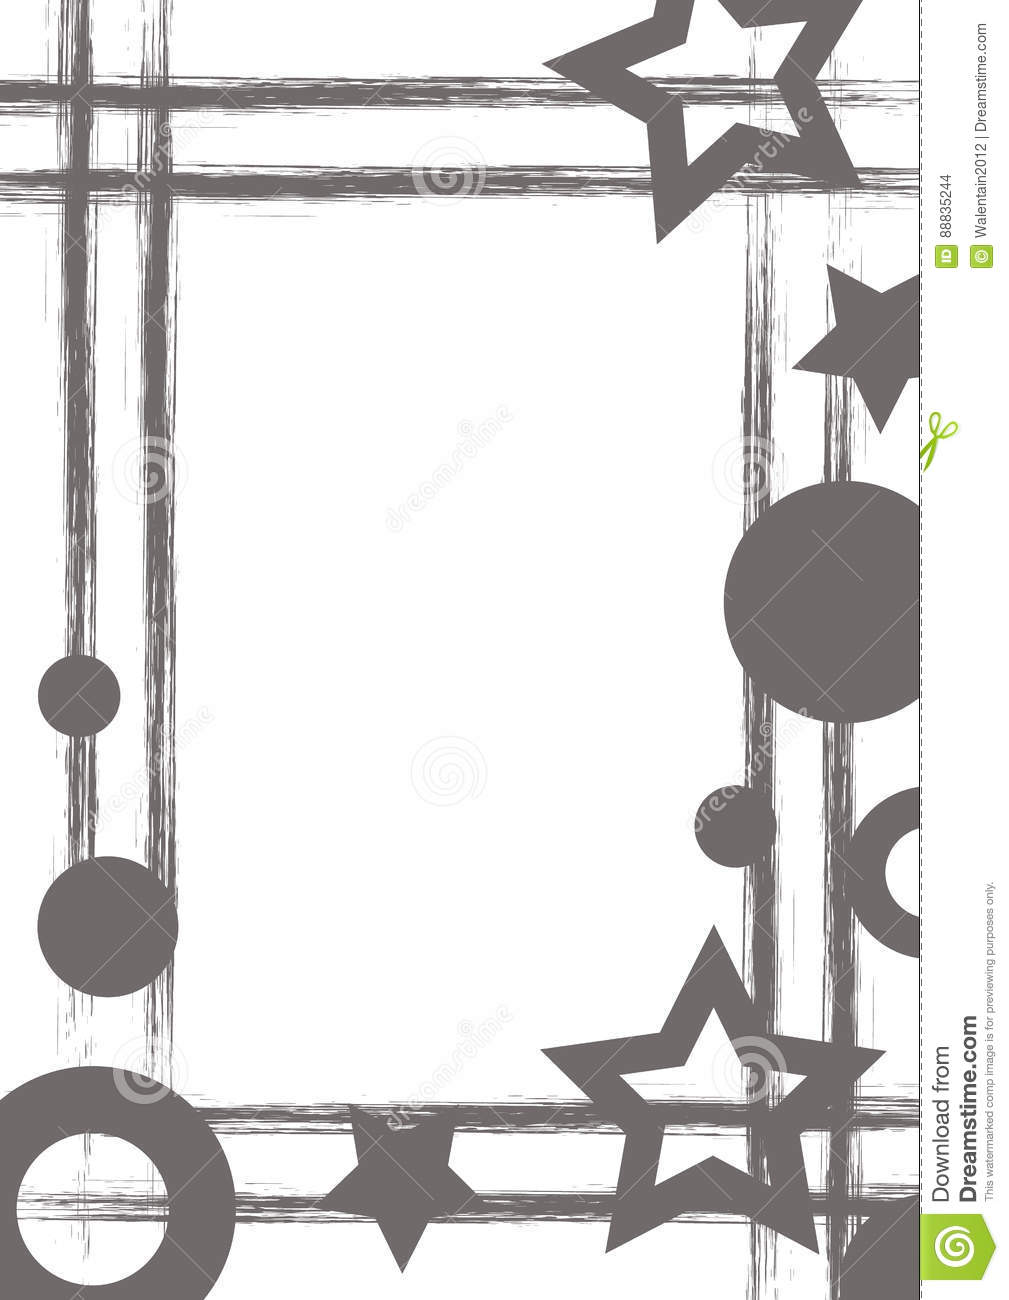 Vector drawn geometric background with geometrical figures, frame, border Grunge template with stars, circles, dots Old style vint